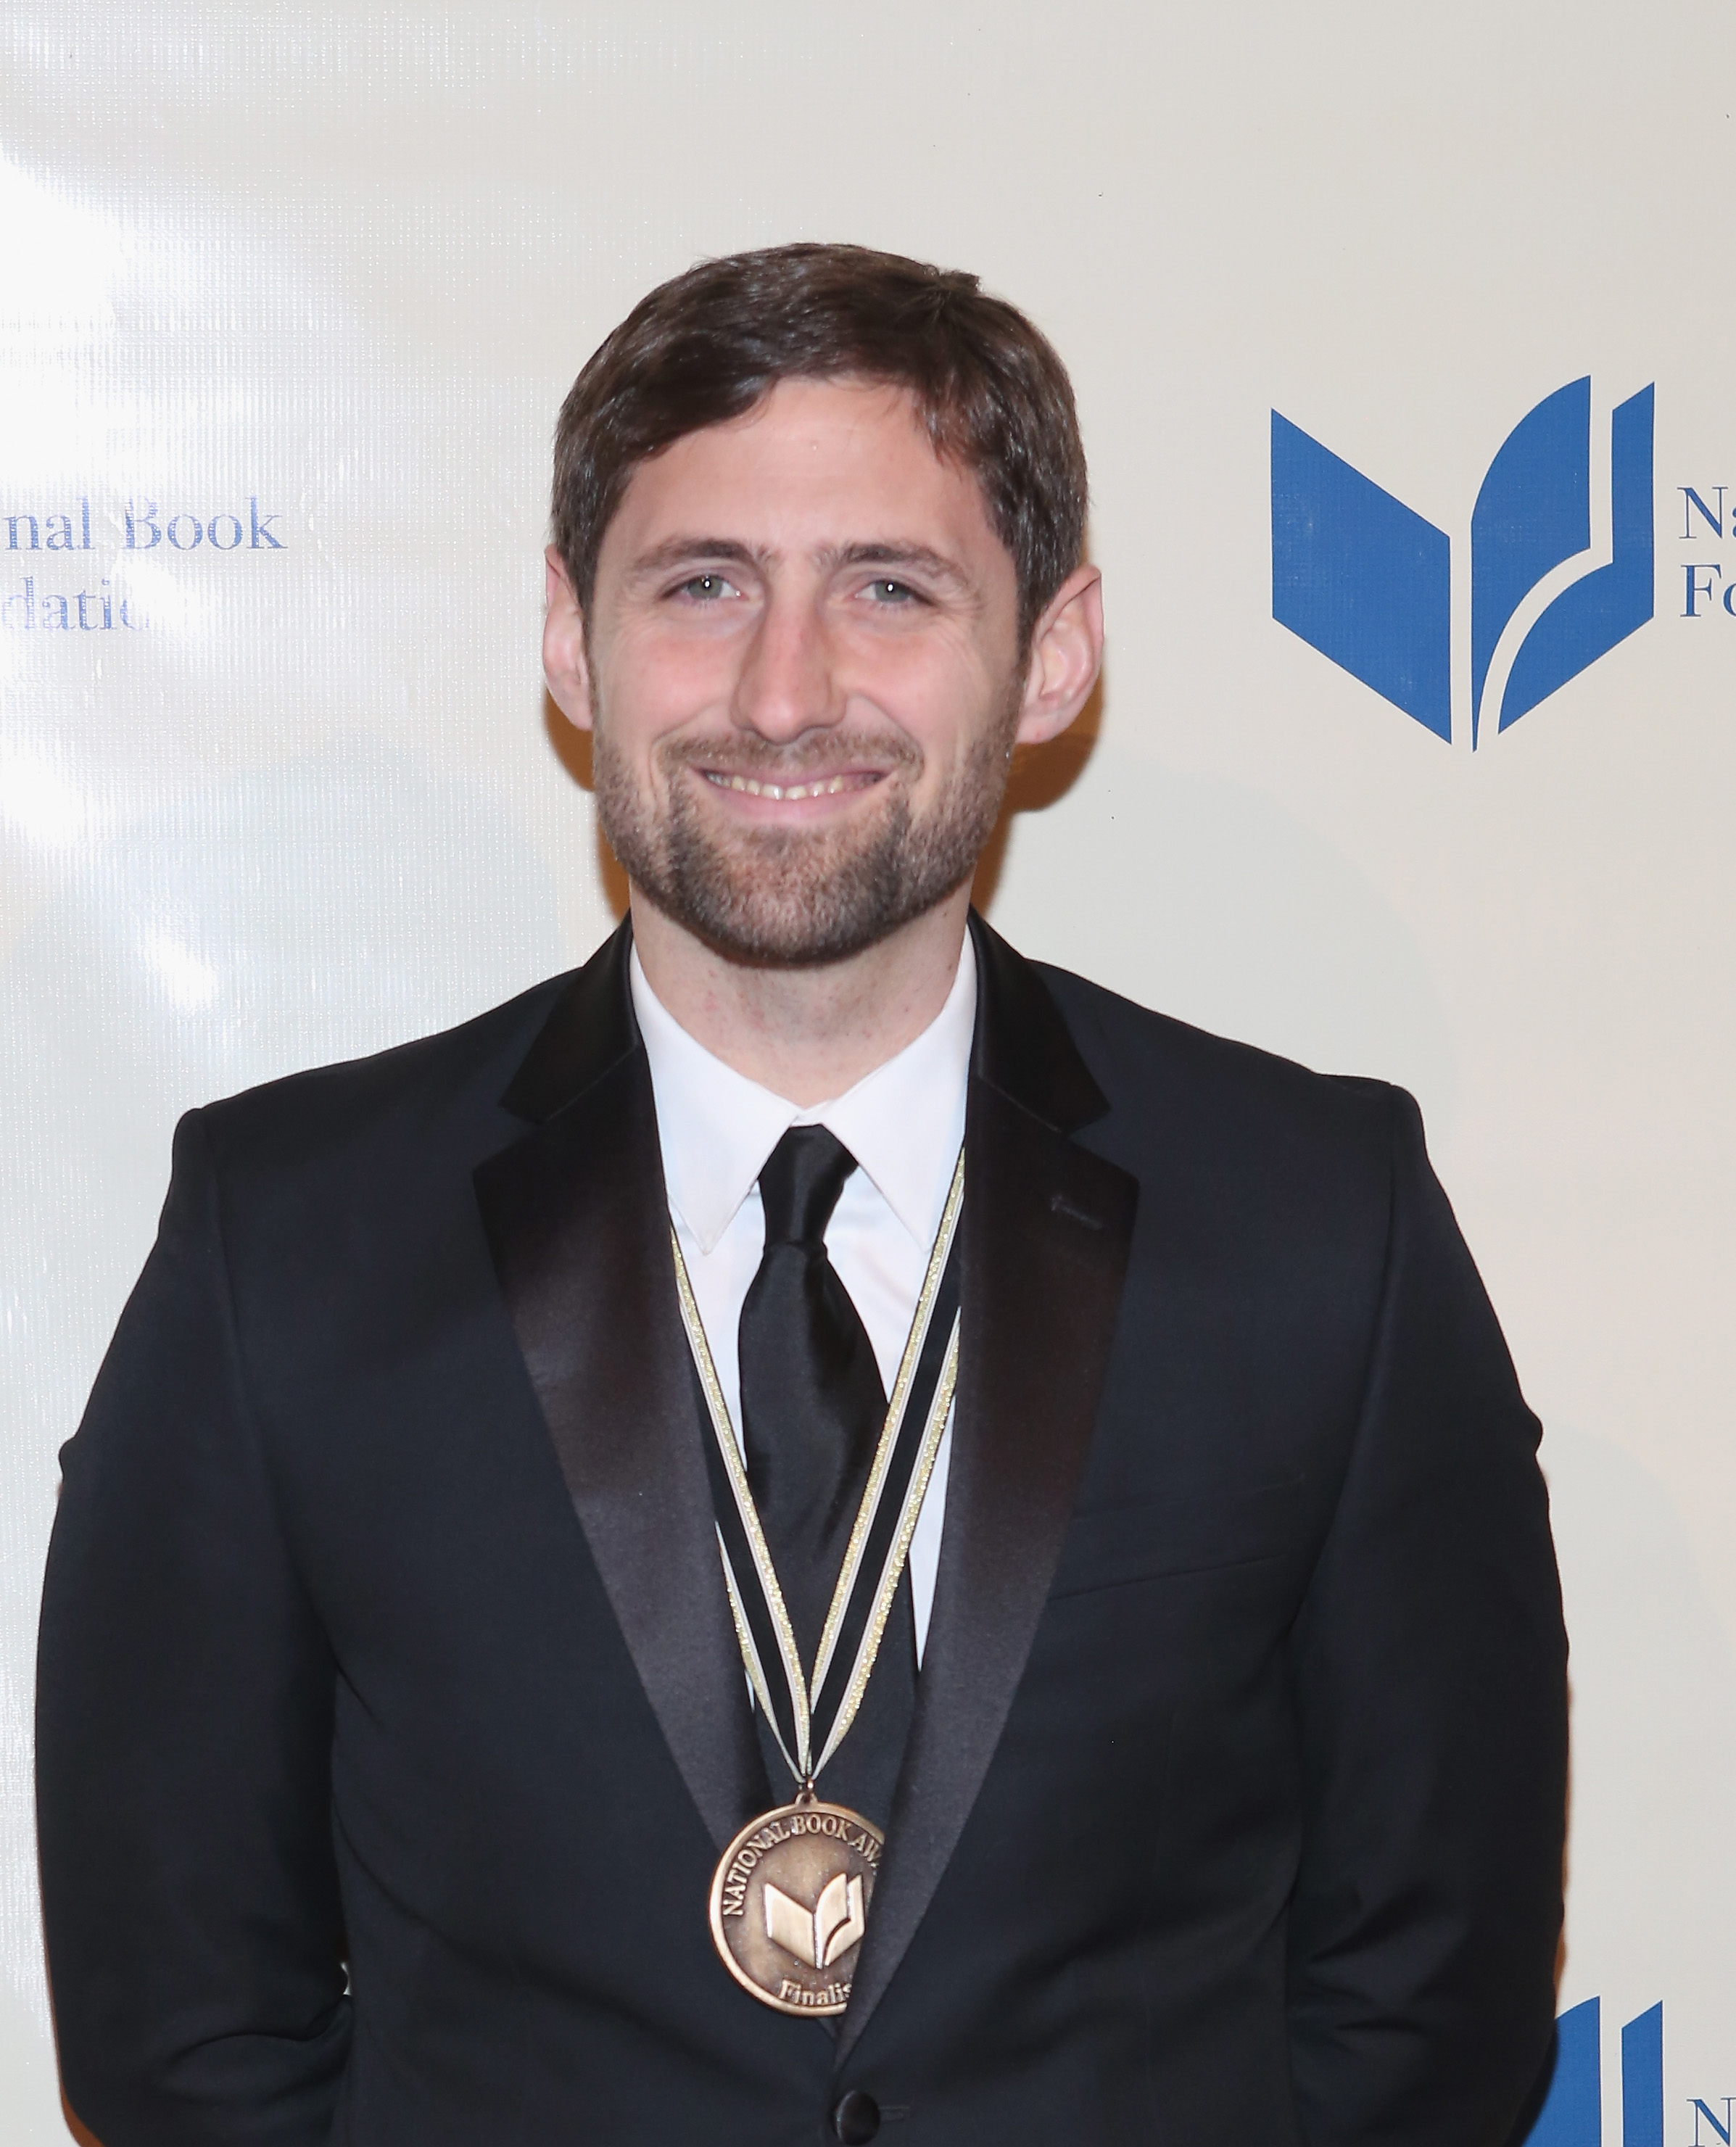 Phil Klay attends the National Book Awards on Nov. 19, 2014 in New York City.